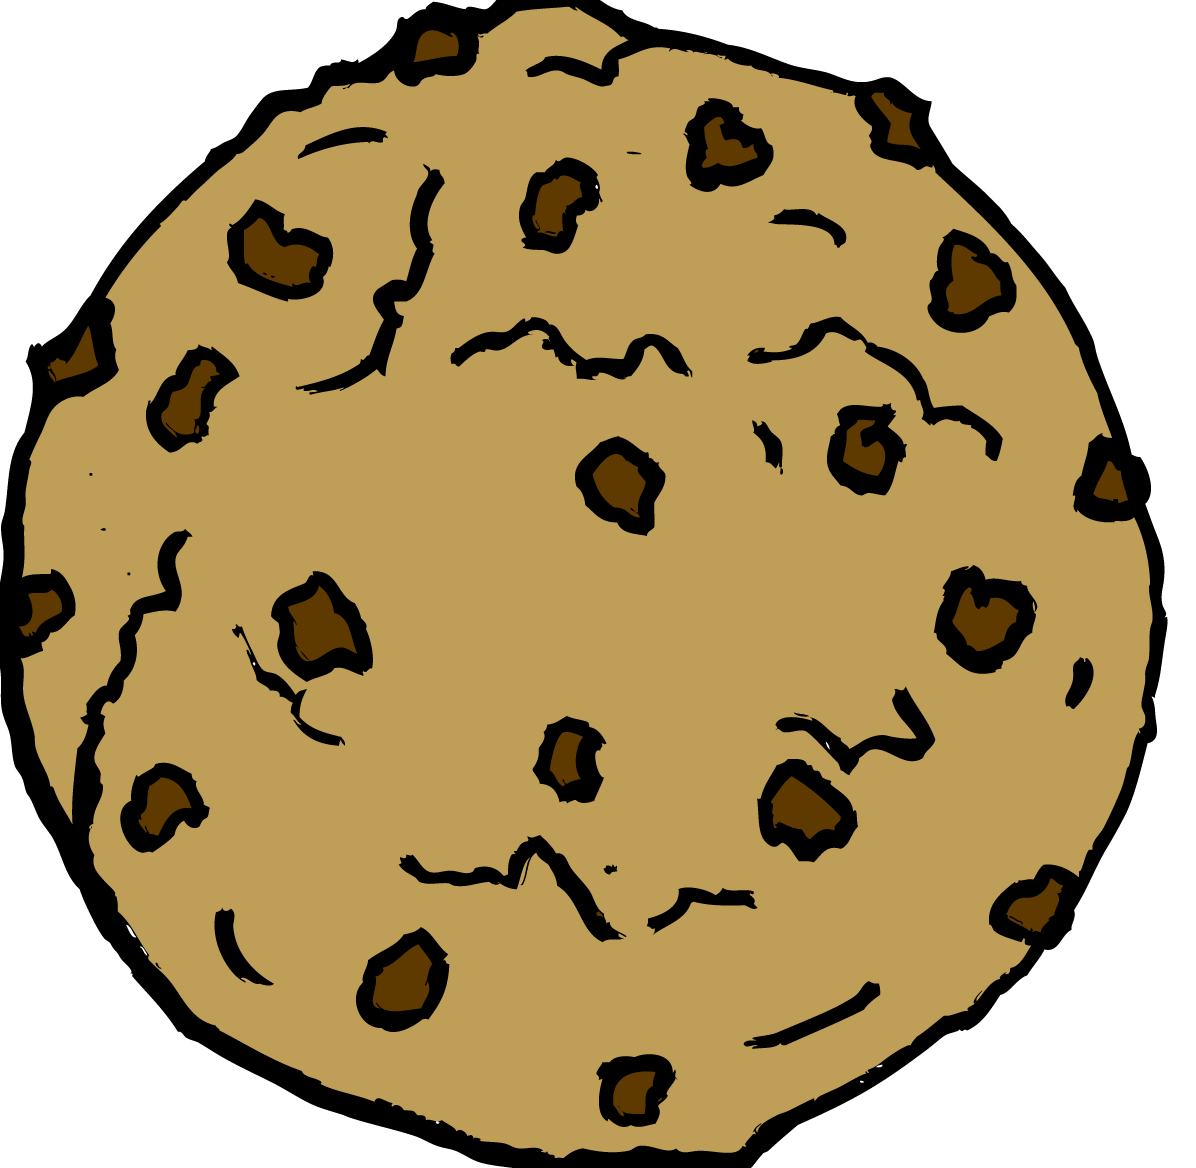 1196x1168 Chocolate Chip Cookie Clipart 2